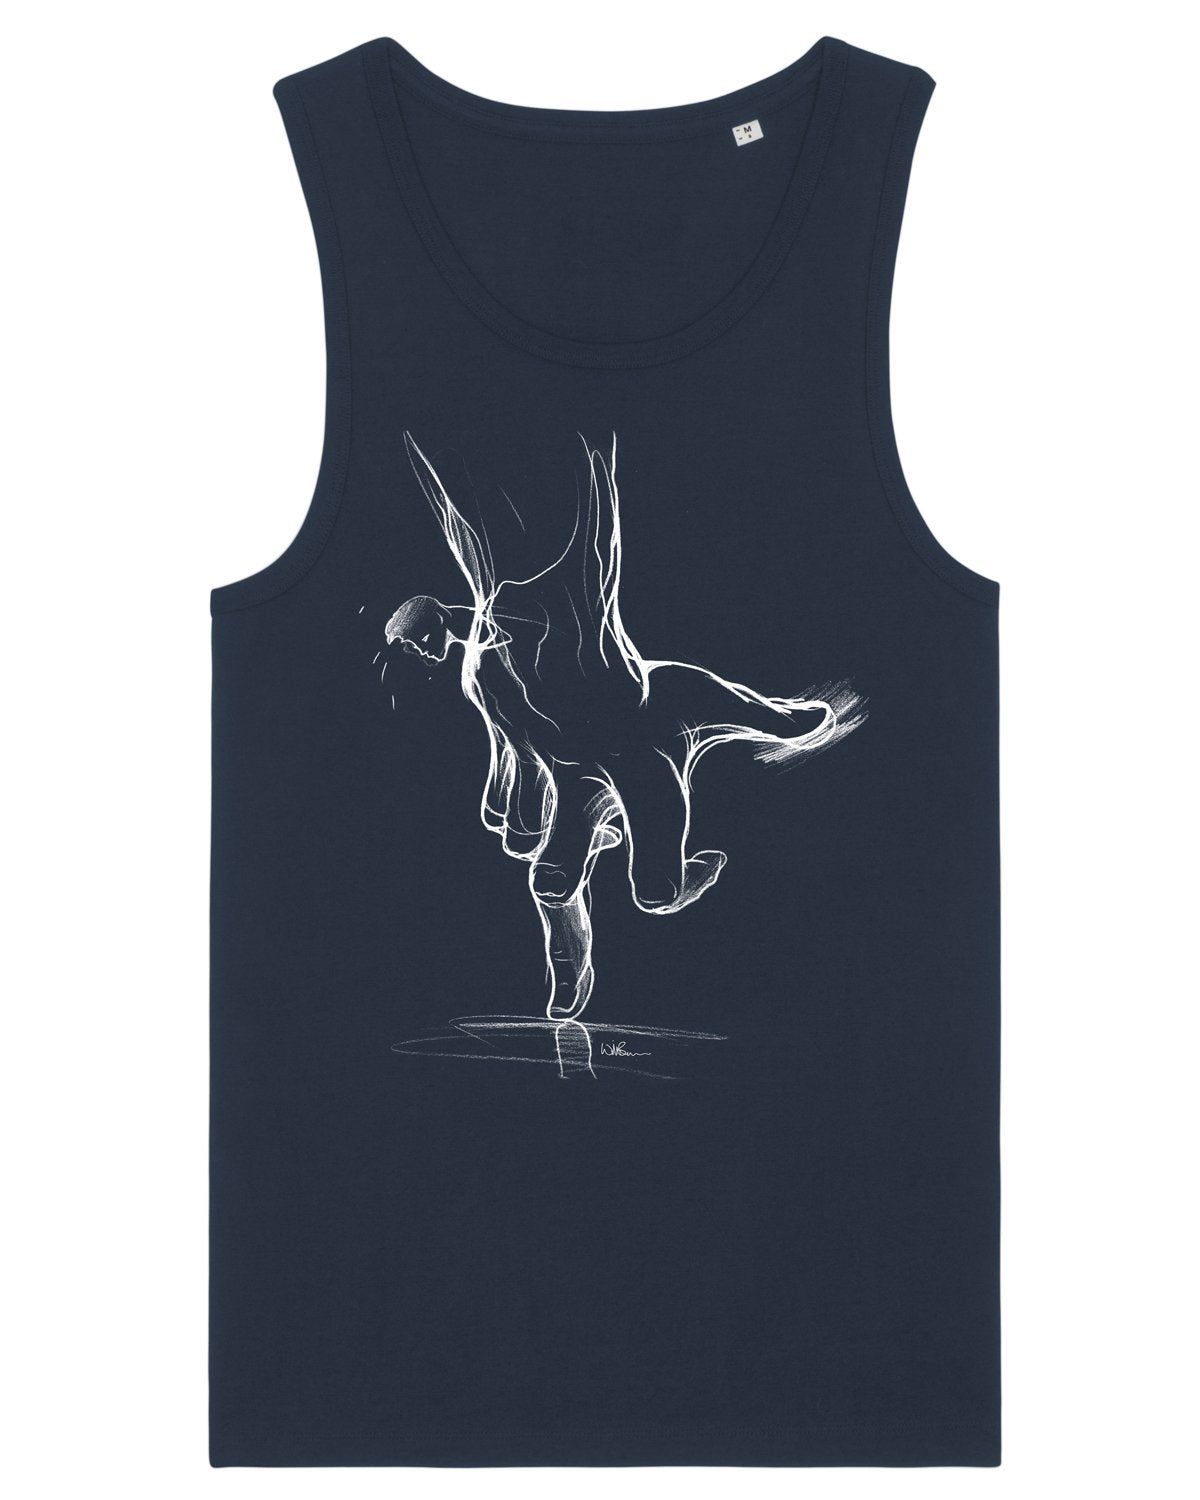 Will Barras 'Trust Hand' Mens Vest